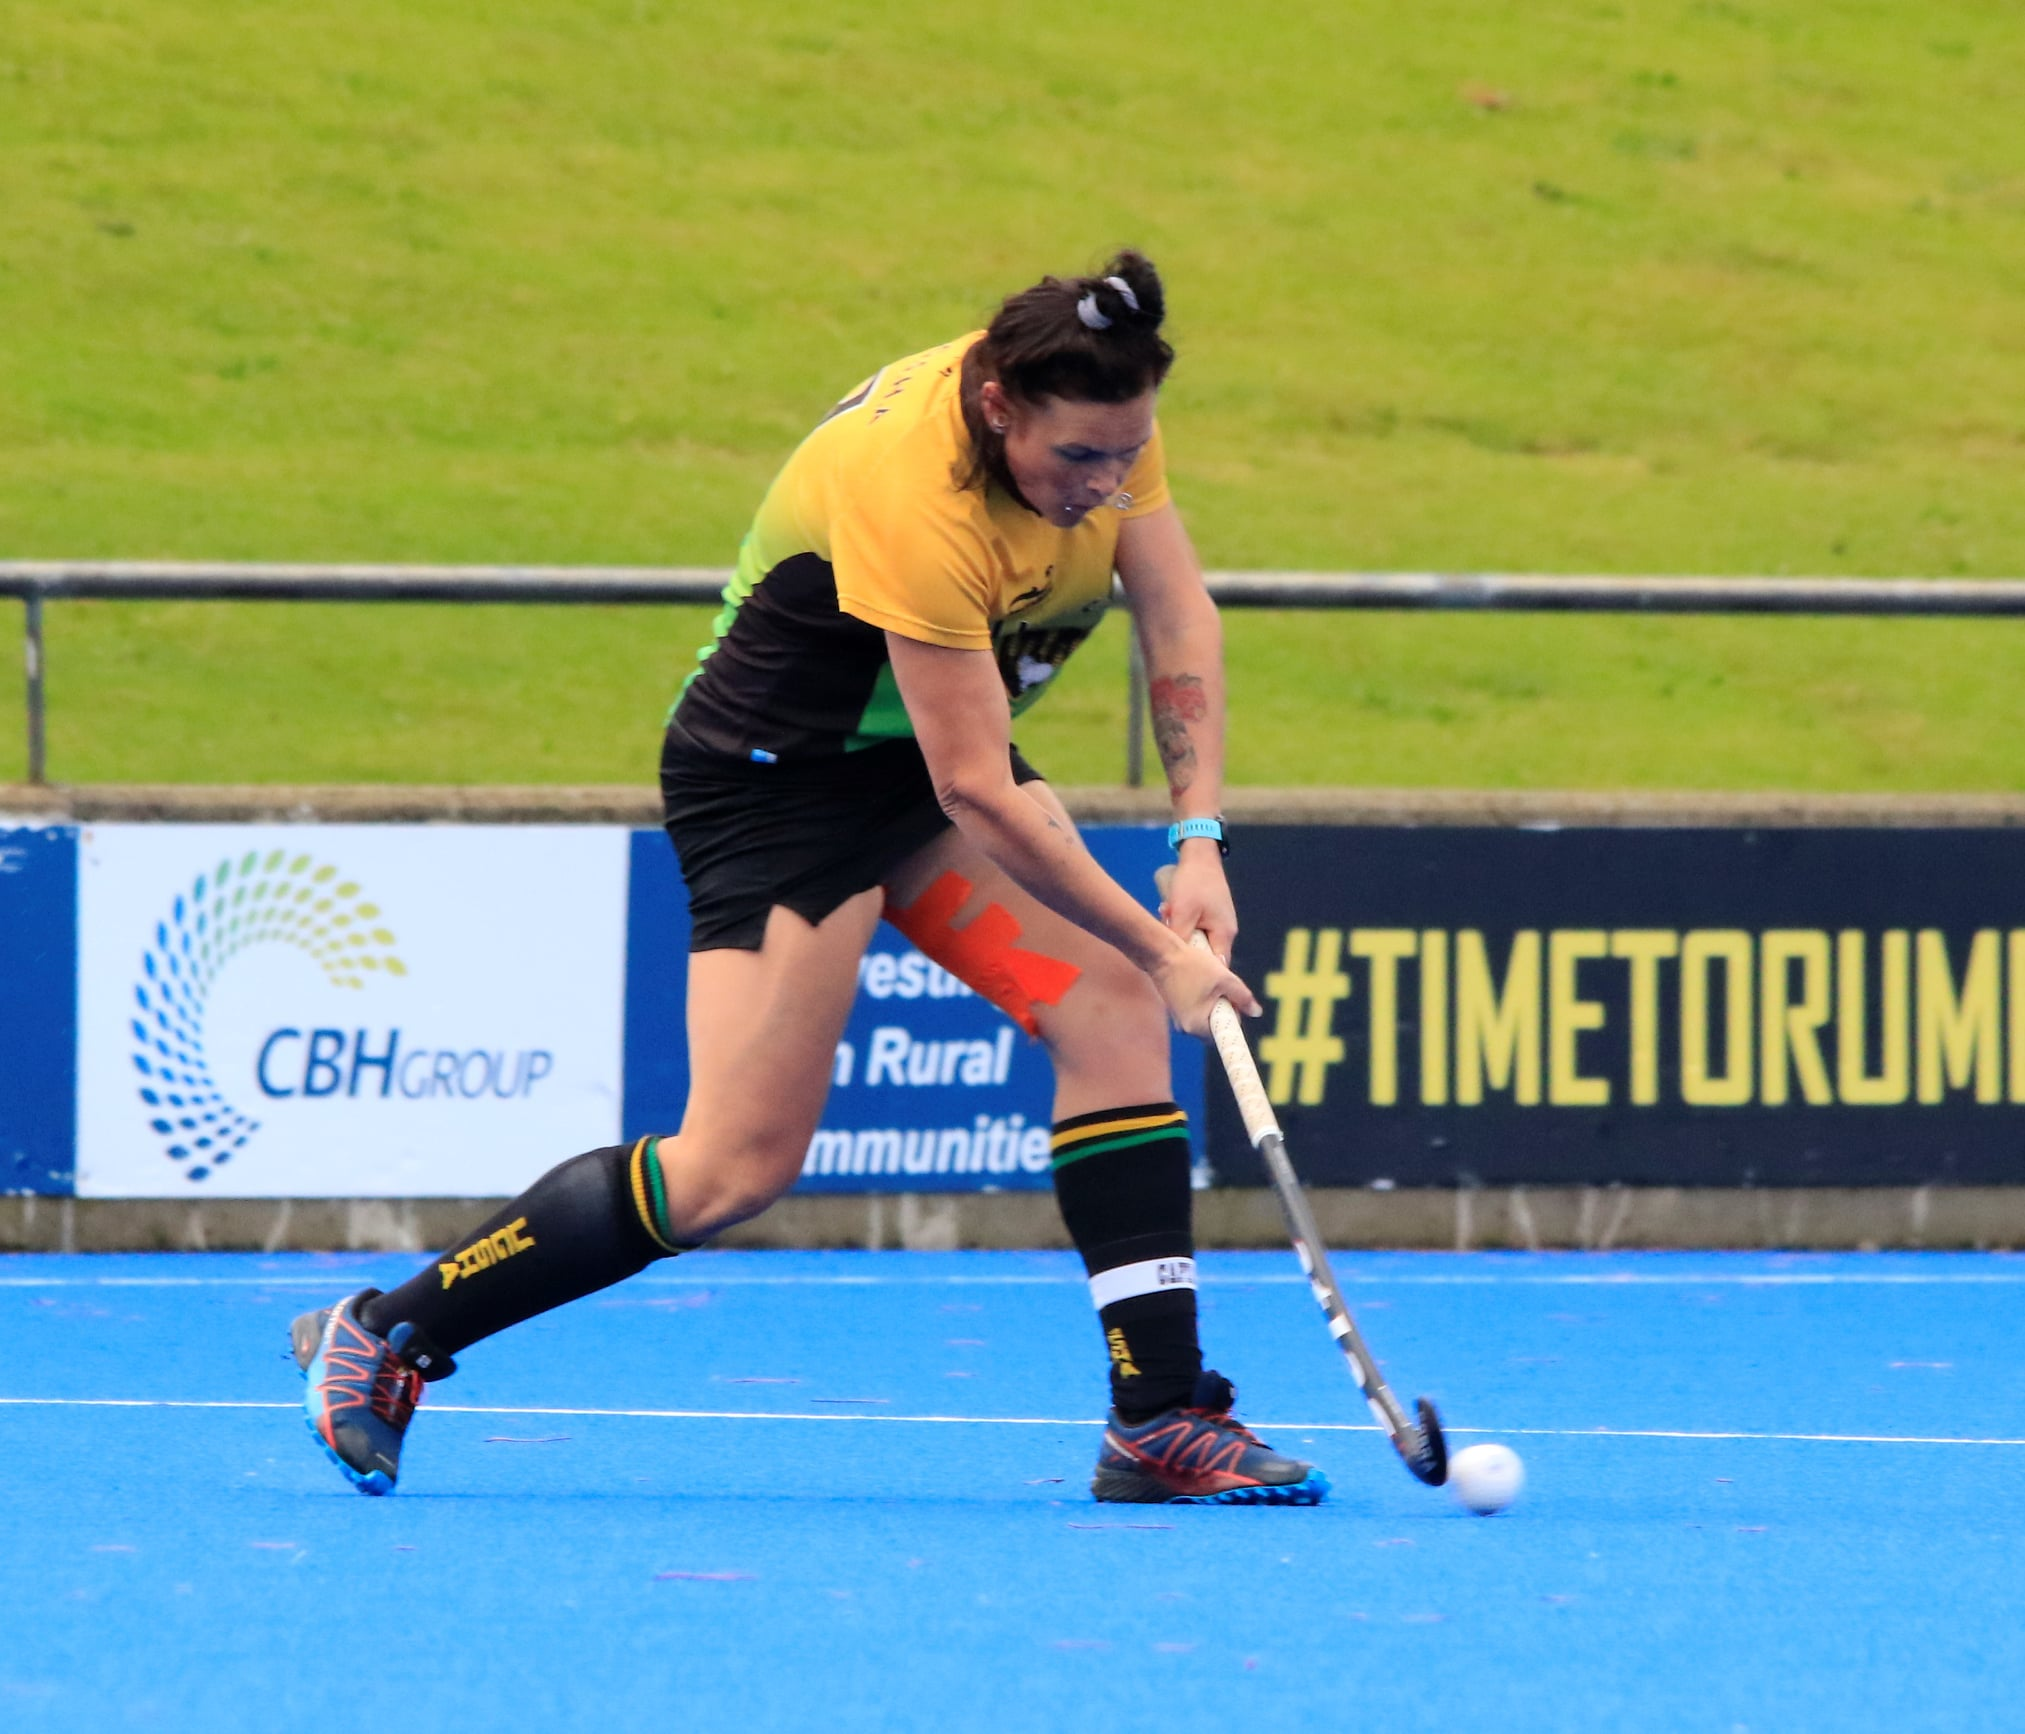 A girl wearing a yellow and green uniform swings a hockey stick